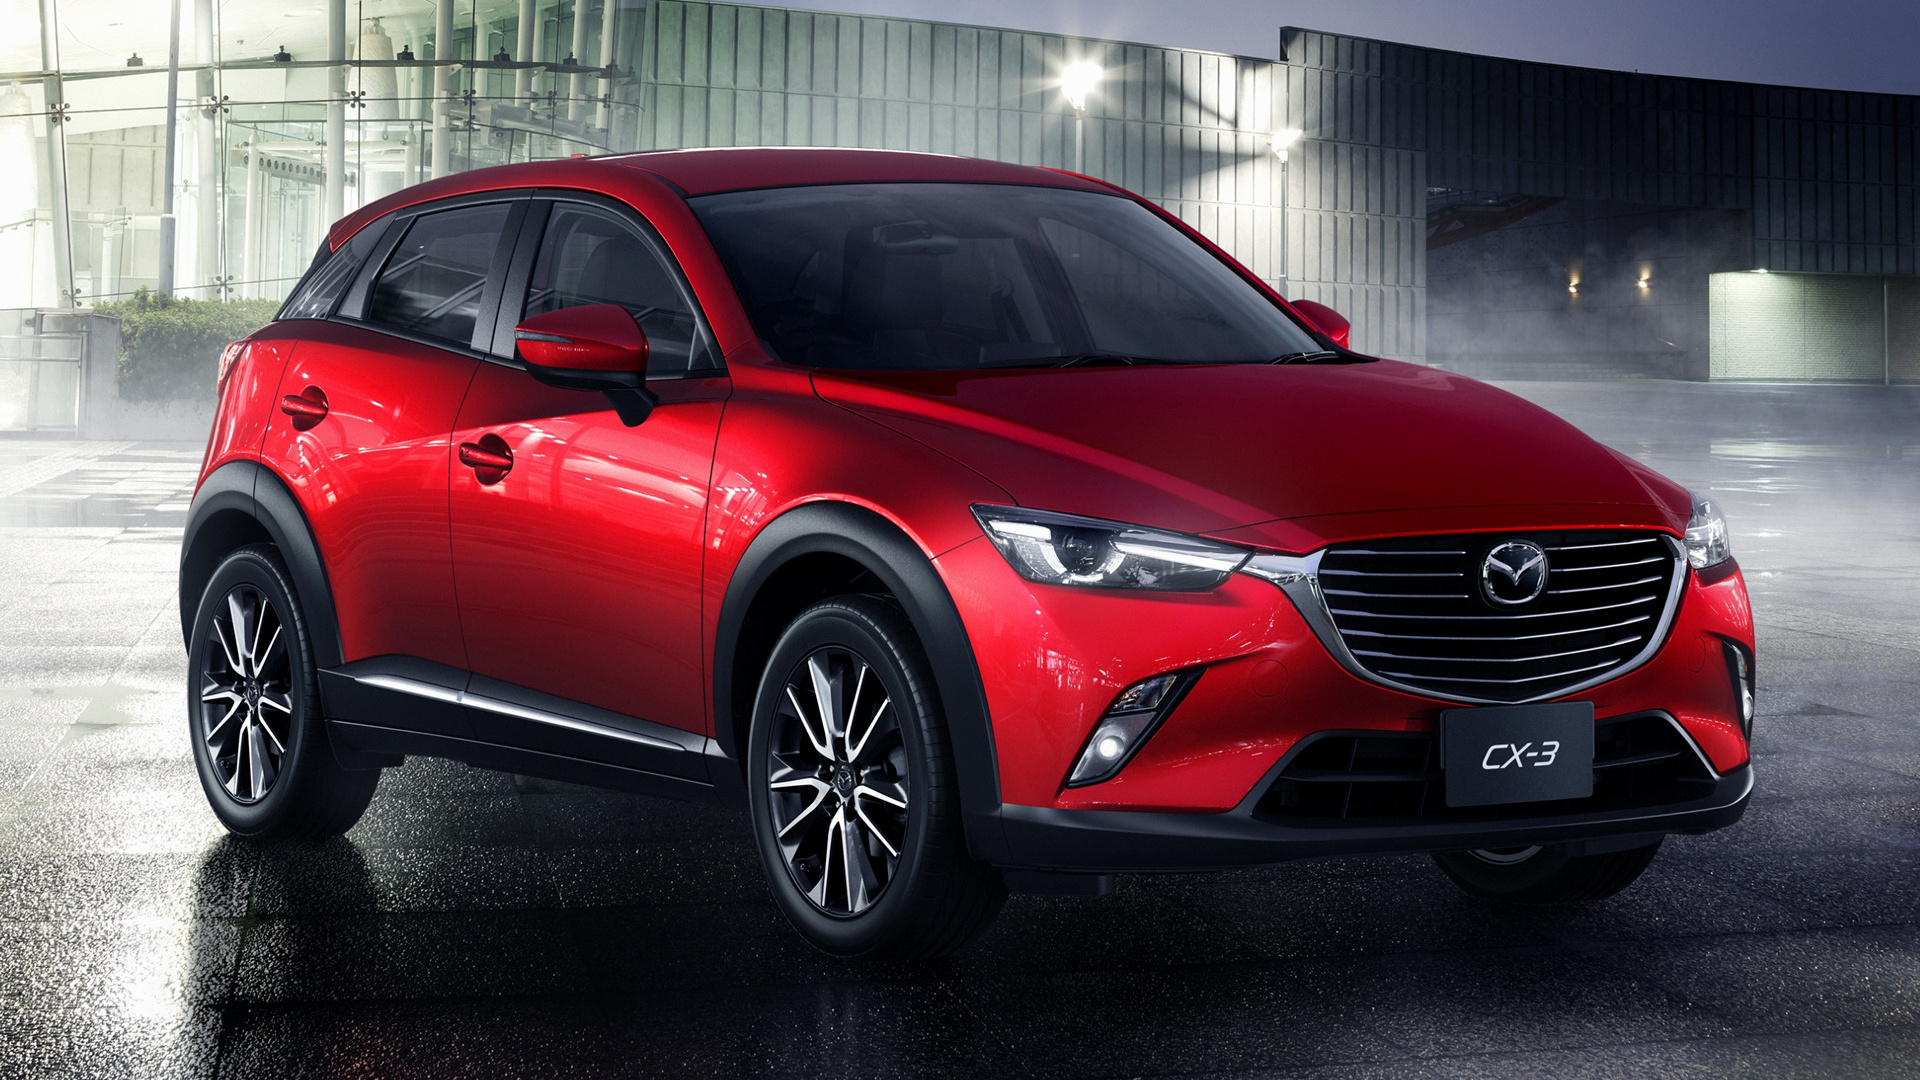 mazda cx 3 2015 jp wallpapers and hd images car pixel. Black Bedroom Furniture Sets. Home Design Ideas